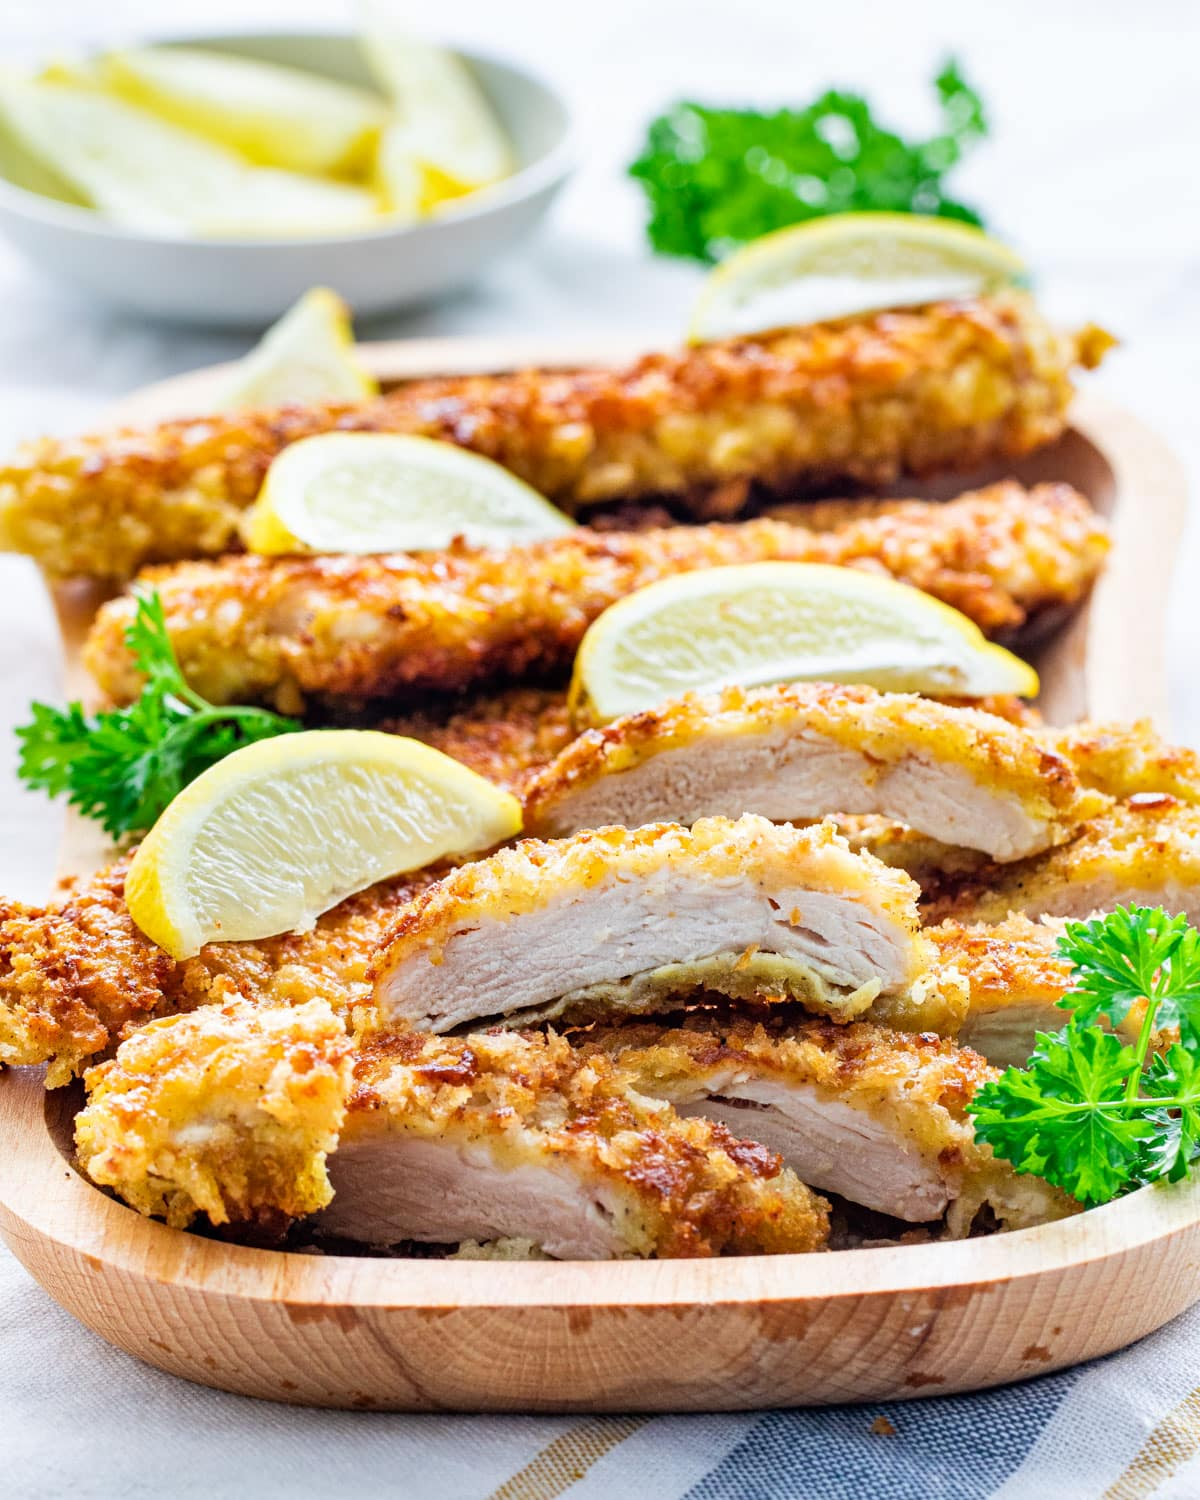 crispy chicken cutlets cut into pieces on a wooden plate garnished with lemon wedges and parsley